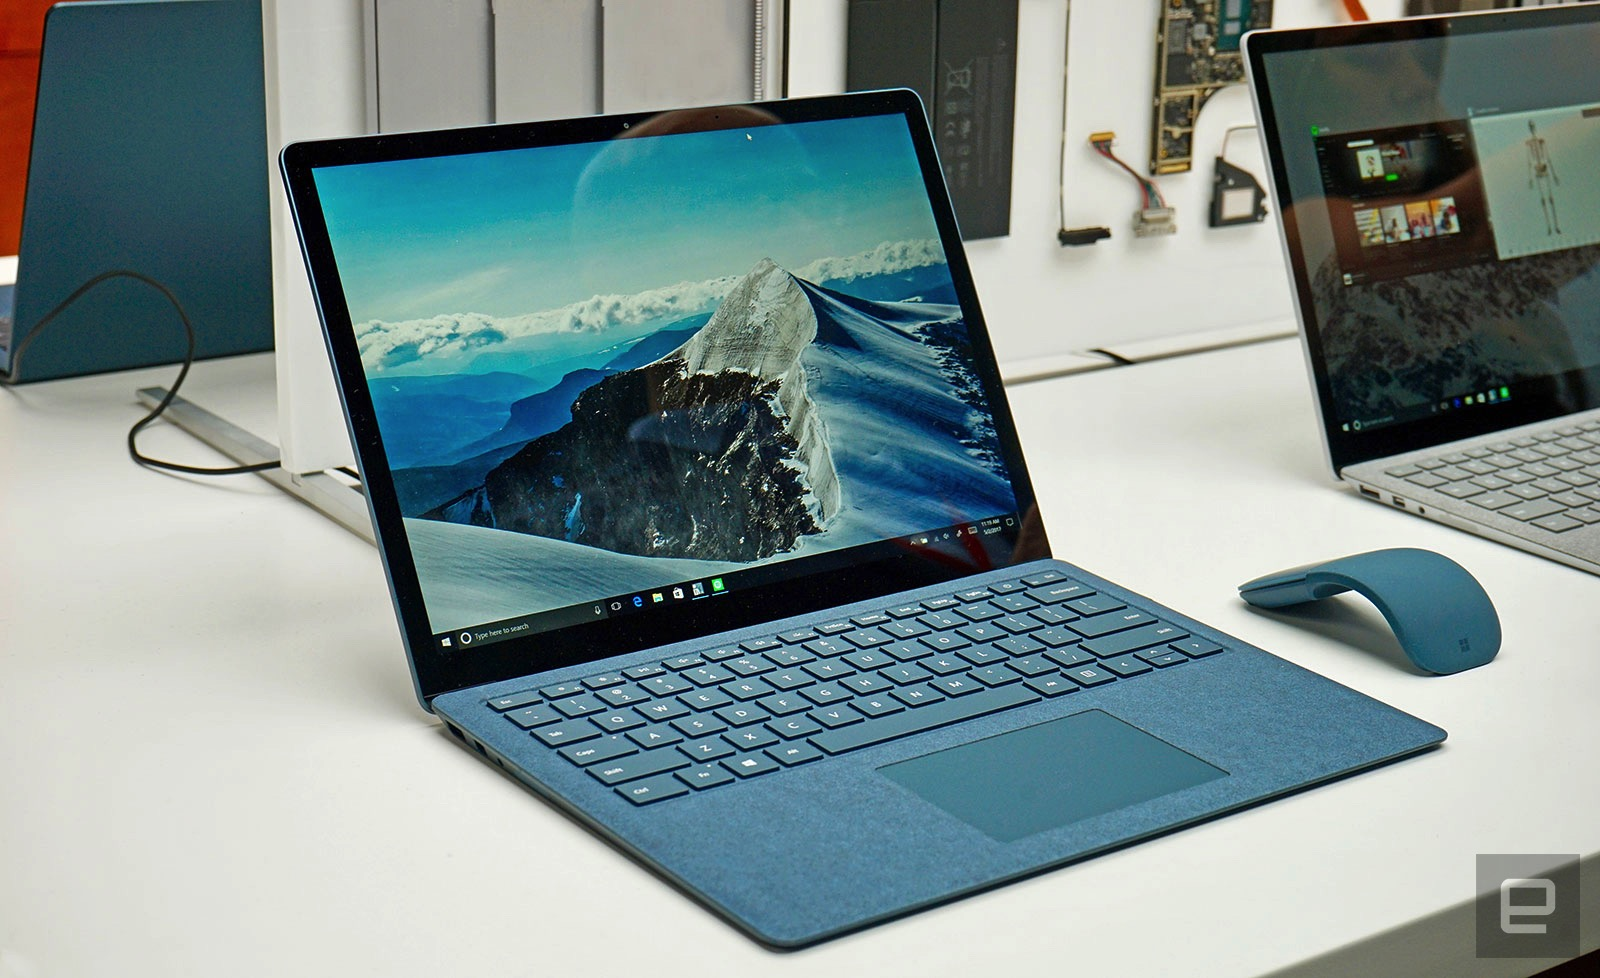 Microsoft Surface Laptop - First Look at Engadget - FunkyKit